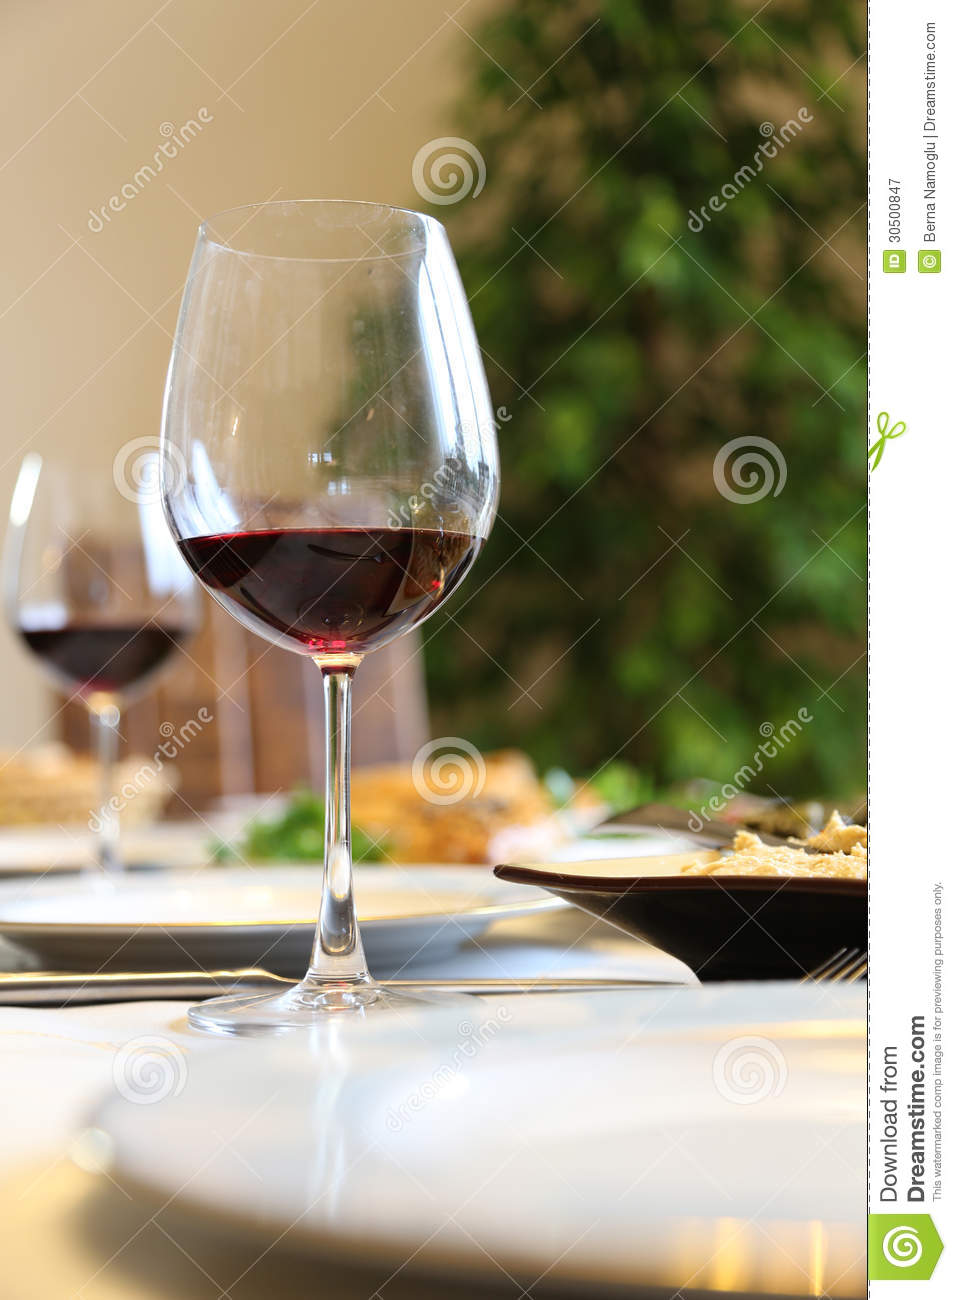 Wine On Table Royalty Free Stock Photography - Image: 30500847